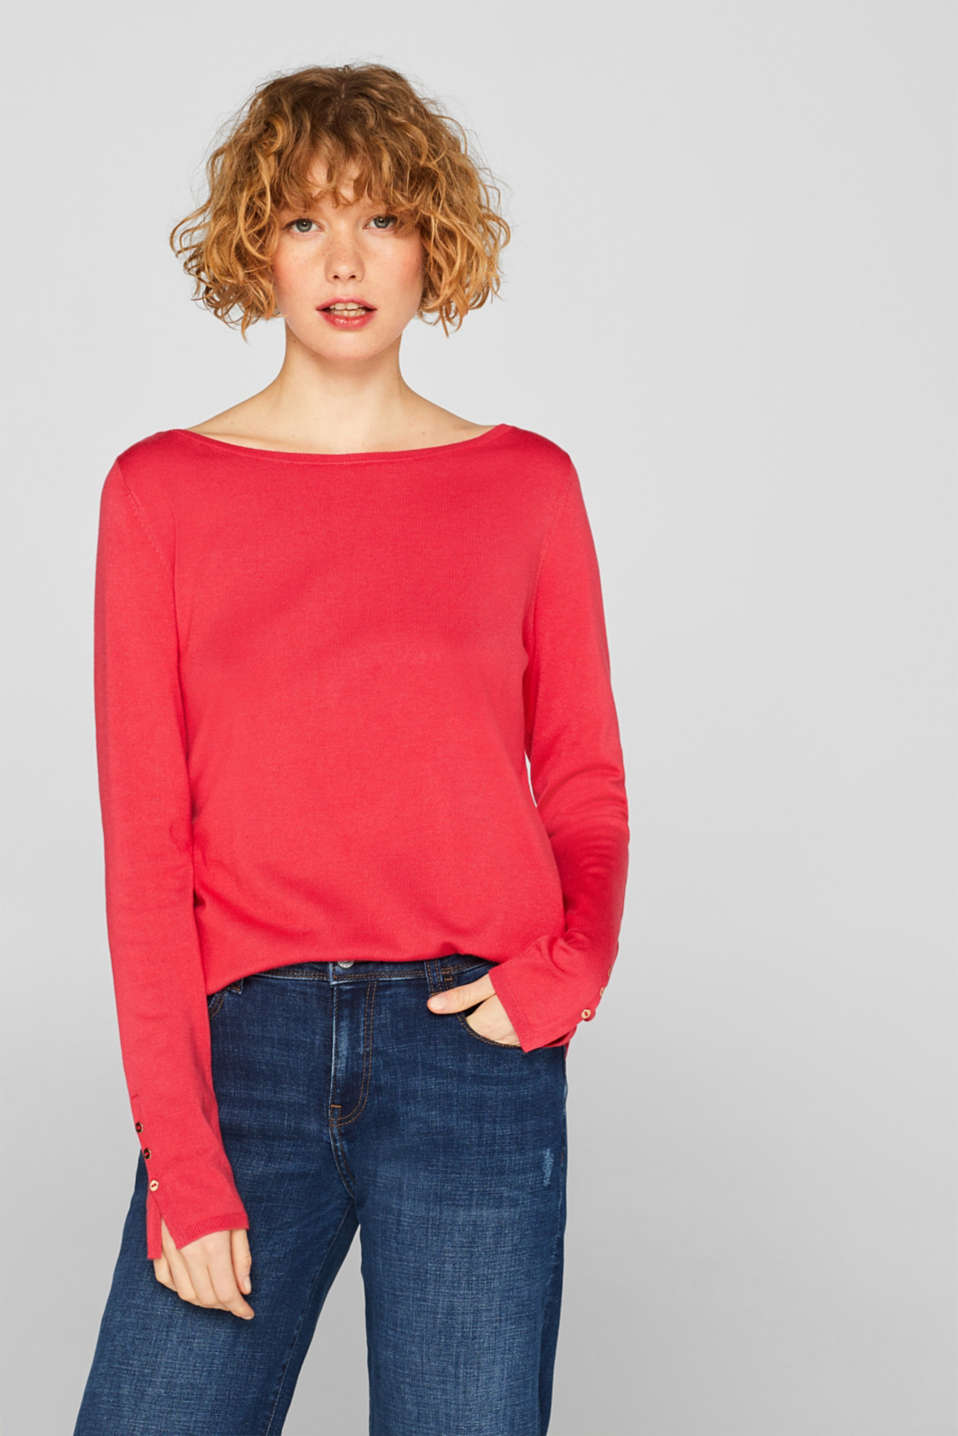 Esprit - Fine knit jumper with stretch for comfort